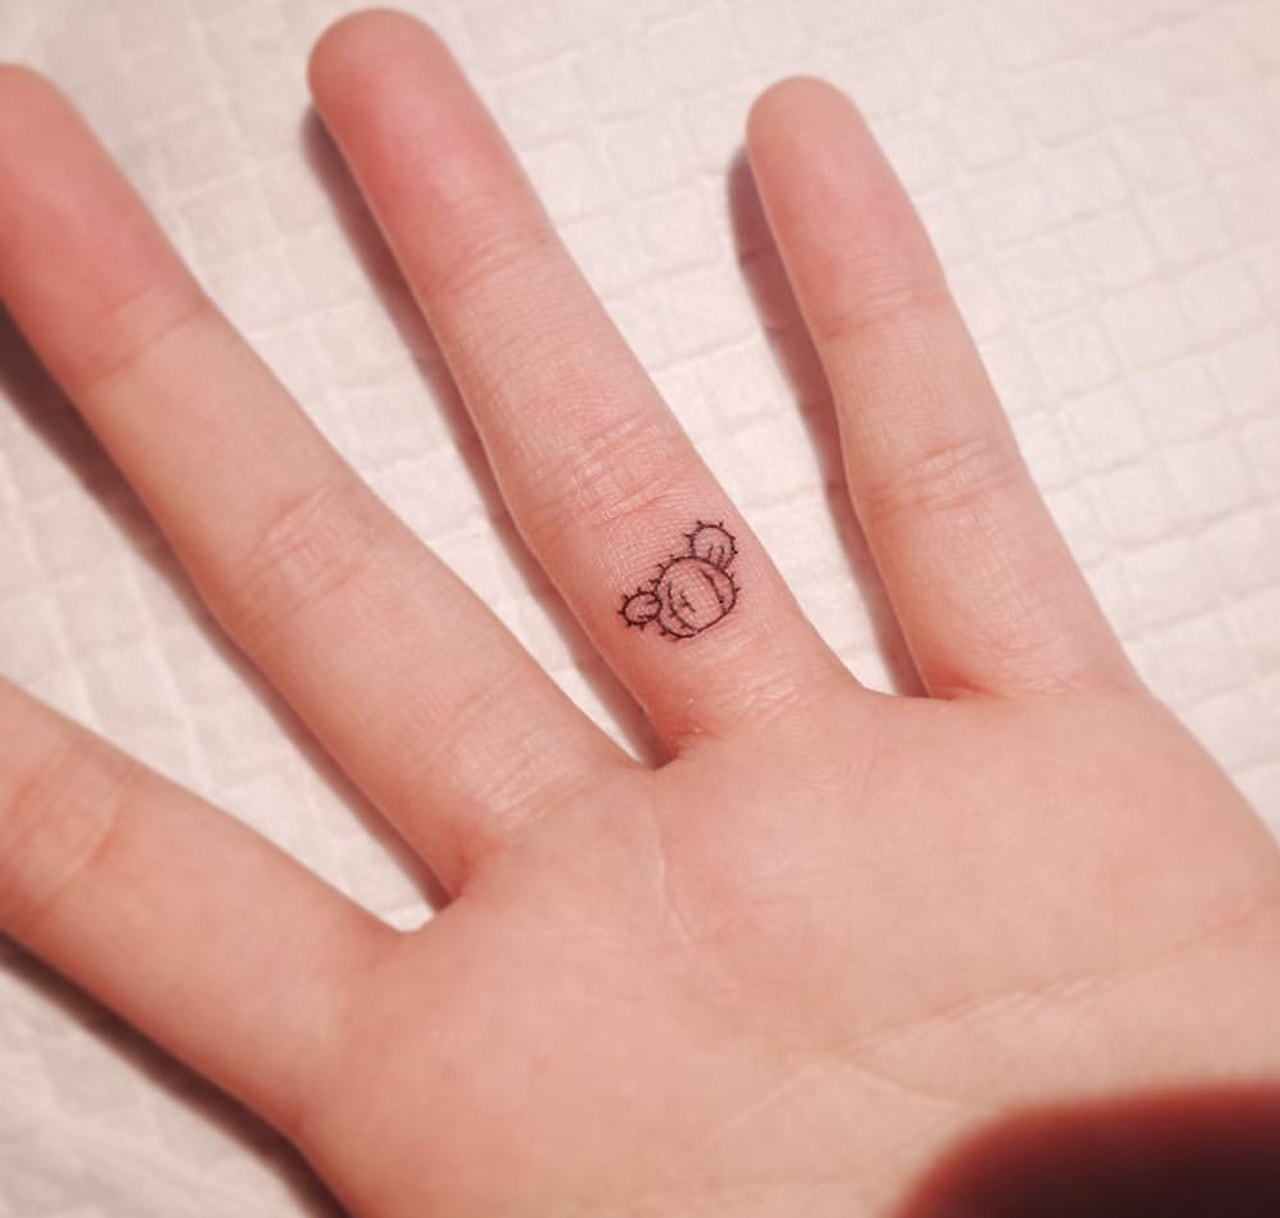 371 images about minimal tattoo on We Heart It | See more about ...